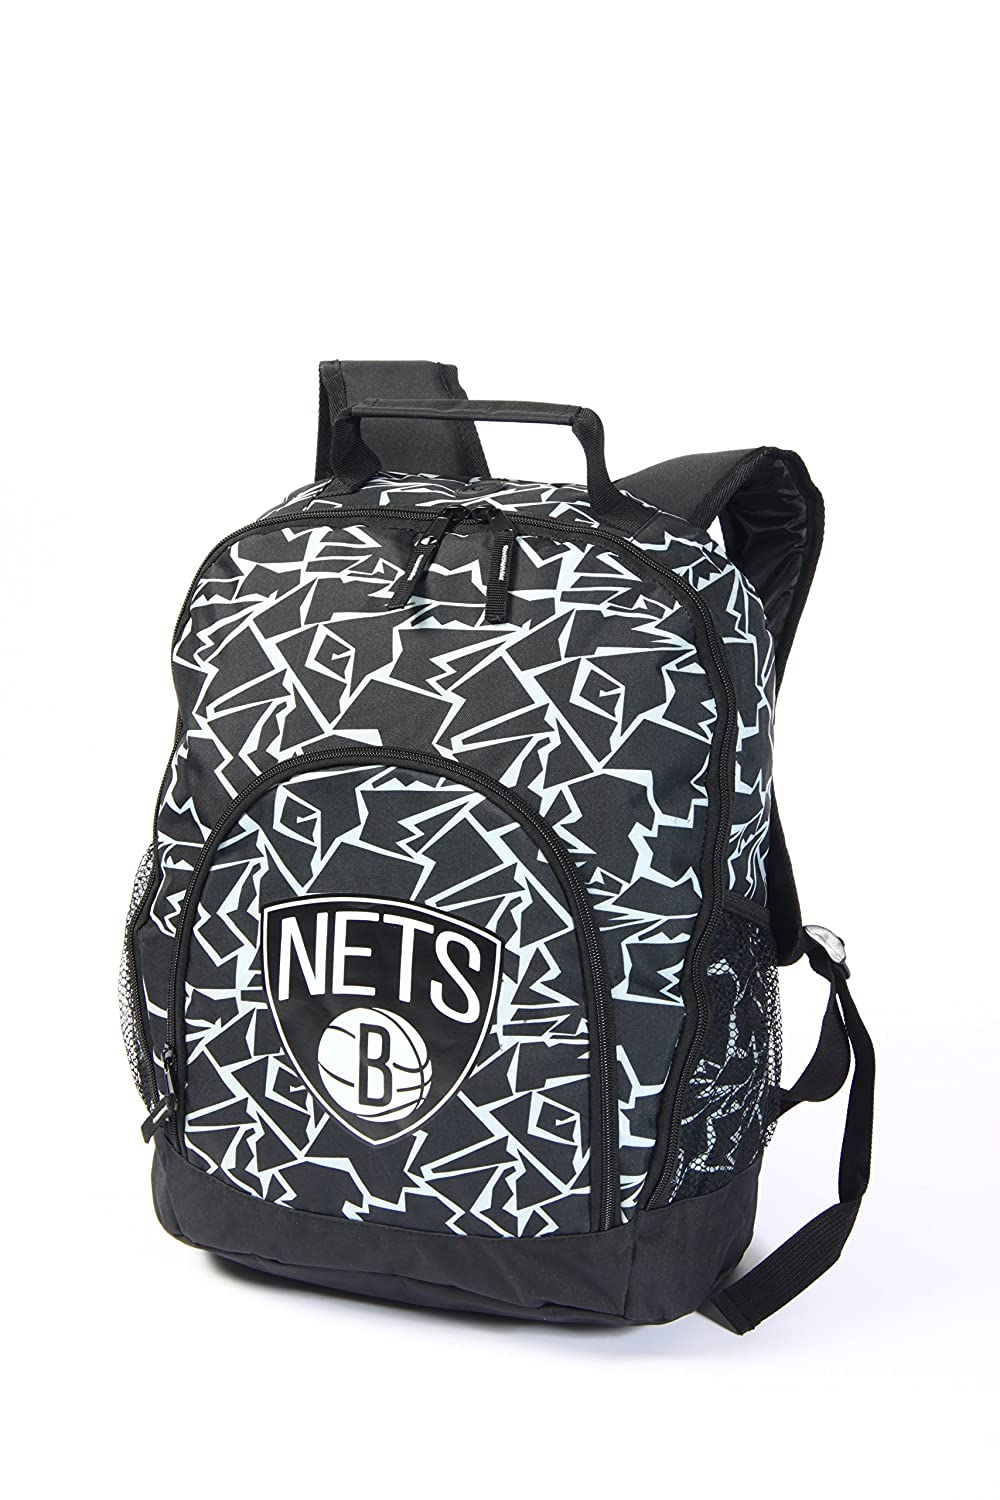 Nba Team Camouflage Back Pack, Brooklyn Nets Forever Collectibles